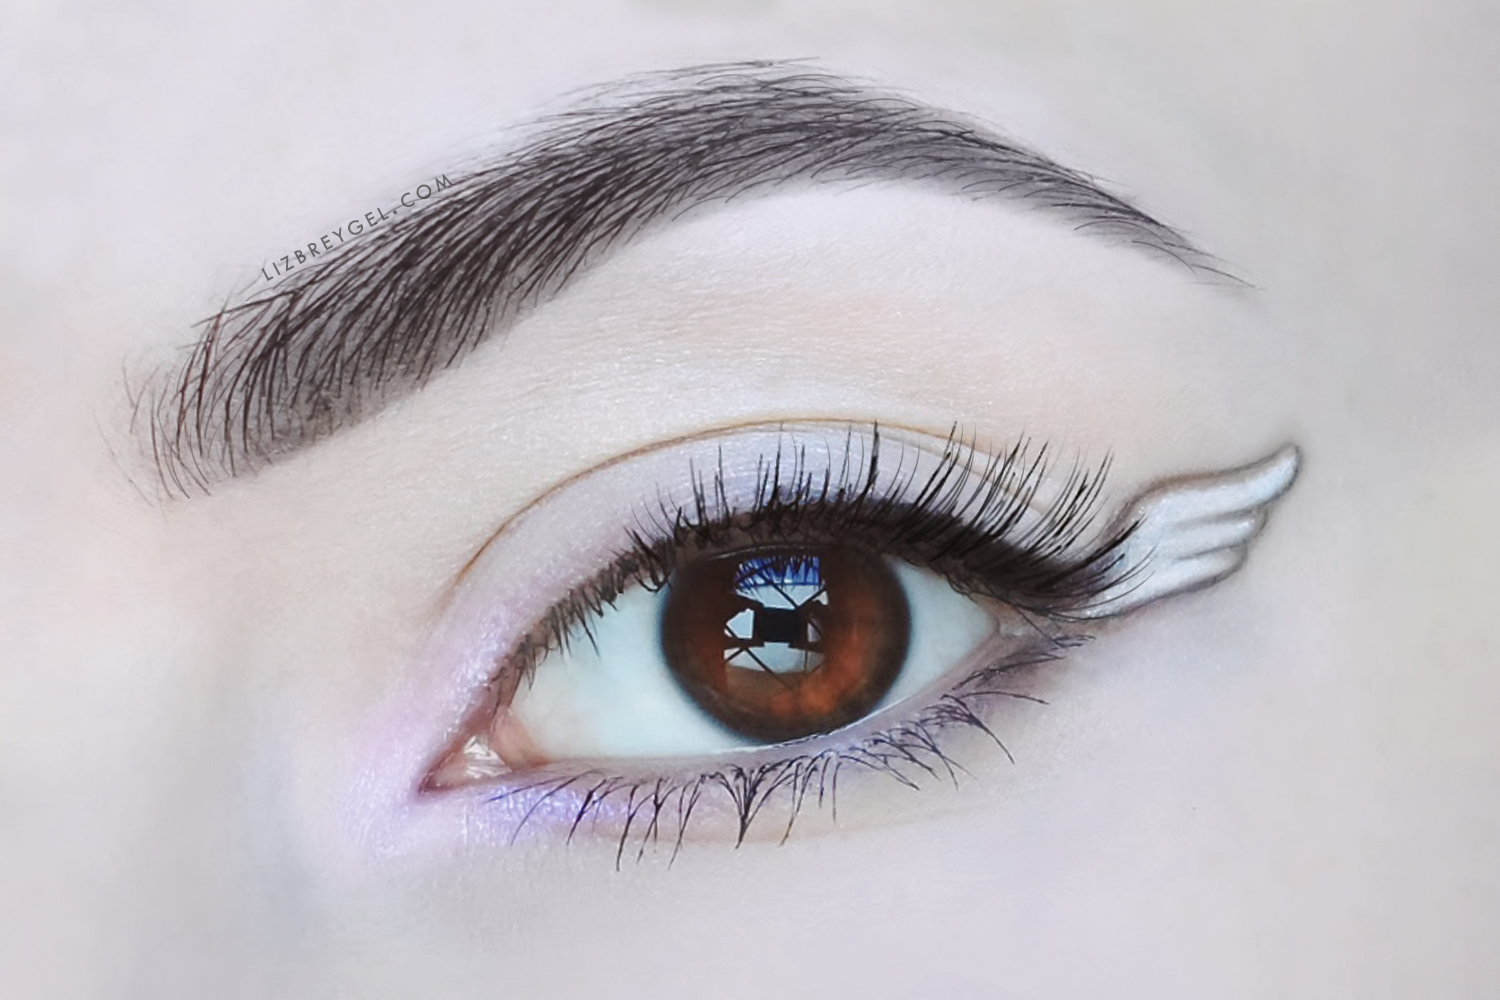 a close up picture of an eye with the angel wing eyeliner in the corner